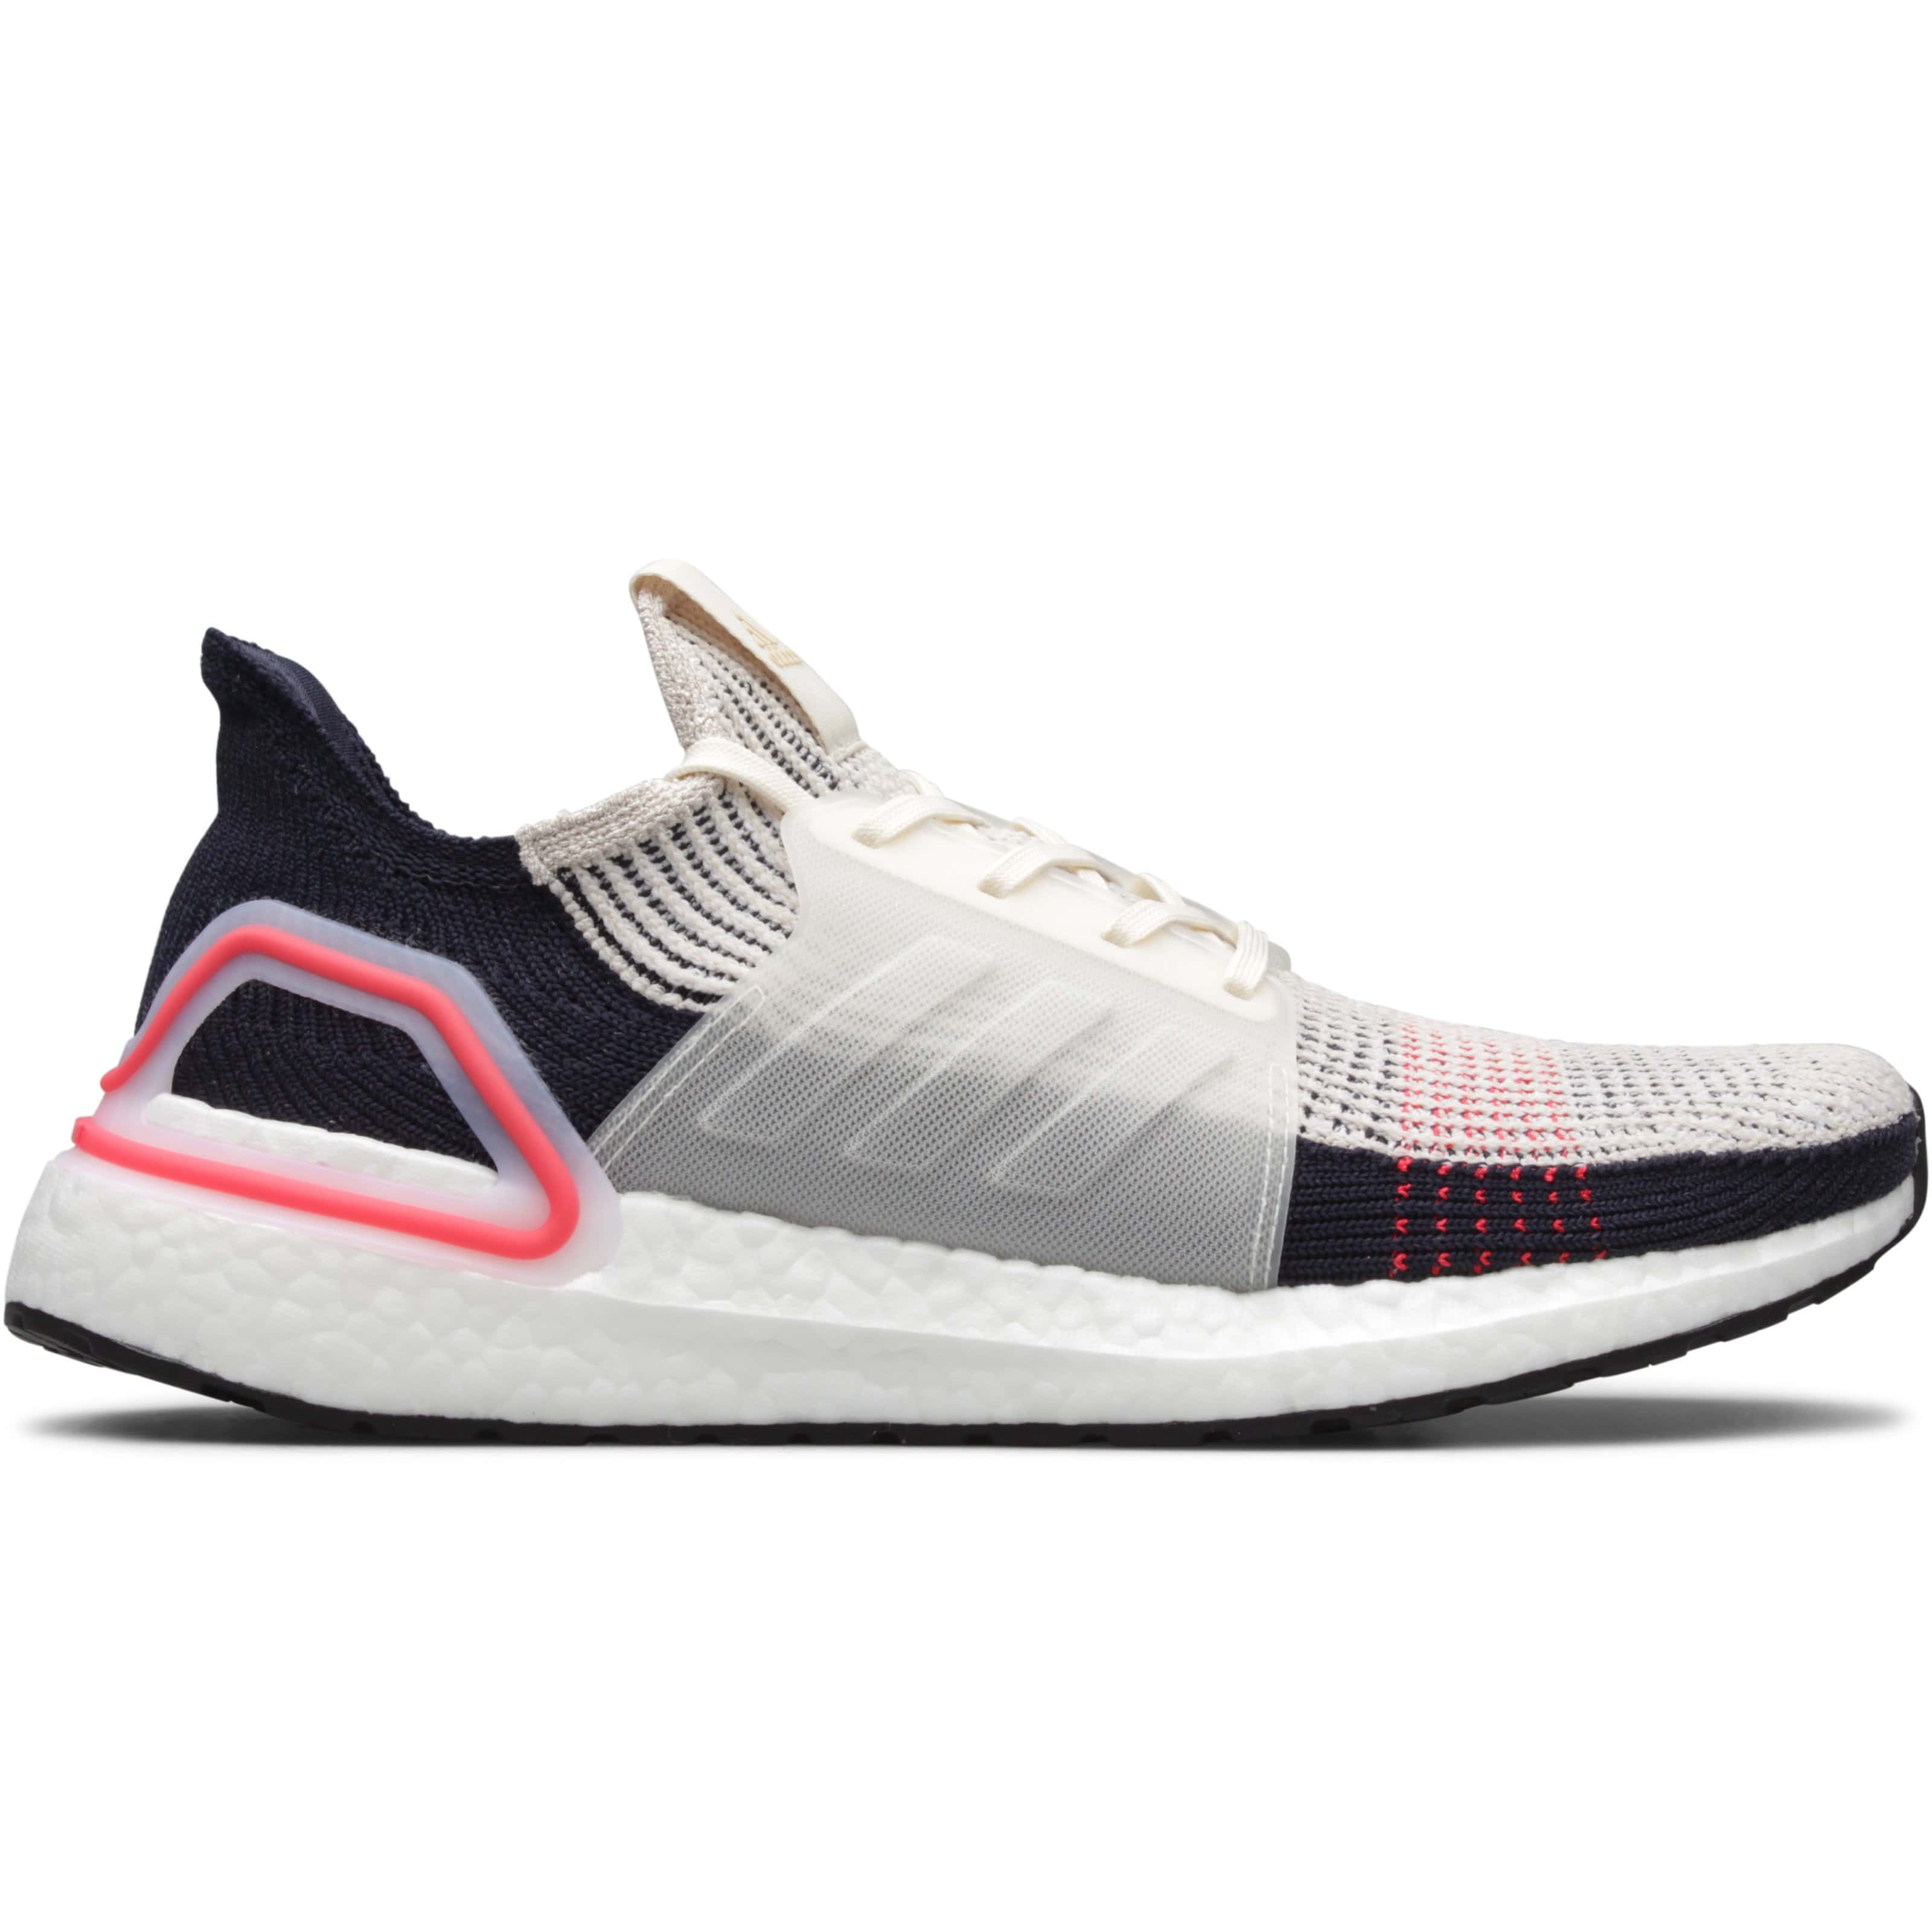 Adidas Shoes ULTRABOOST 19